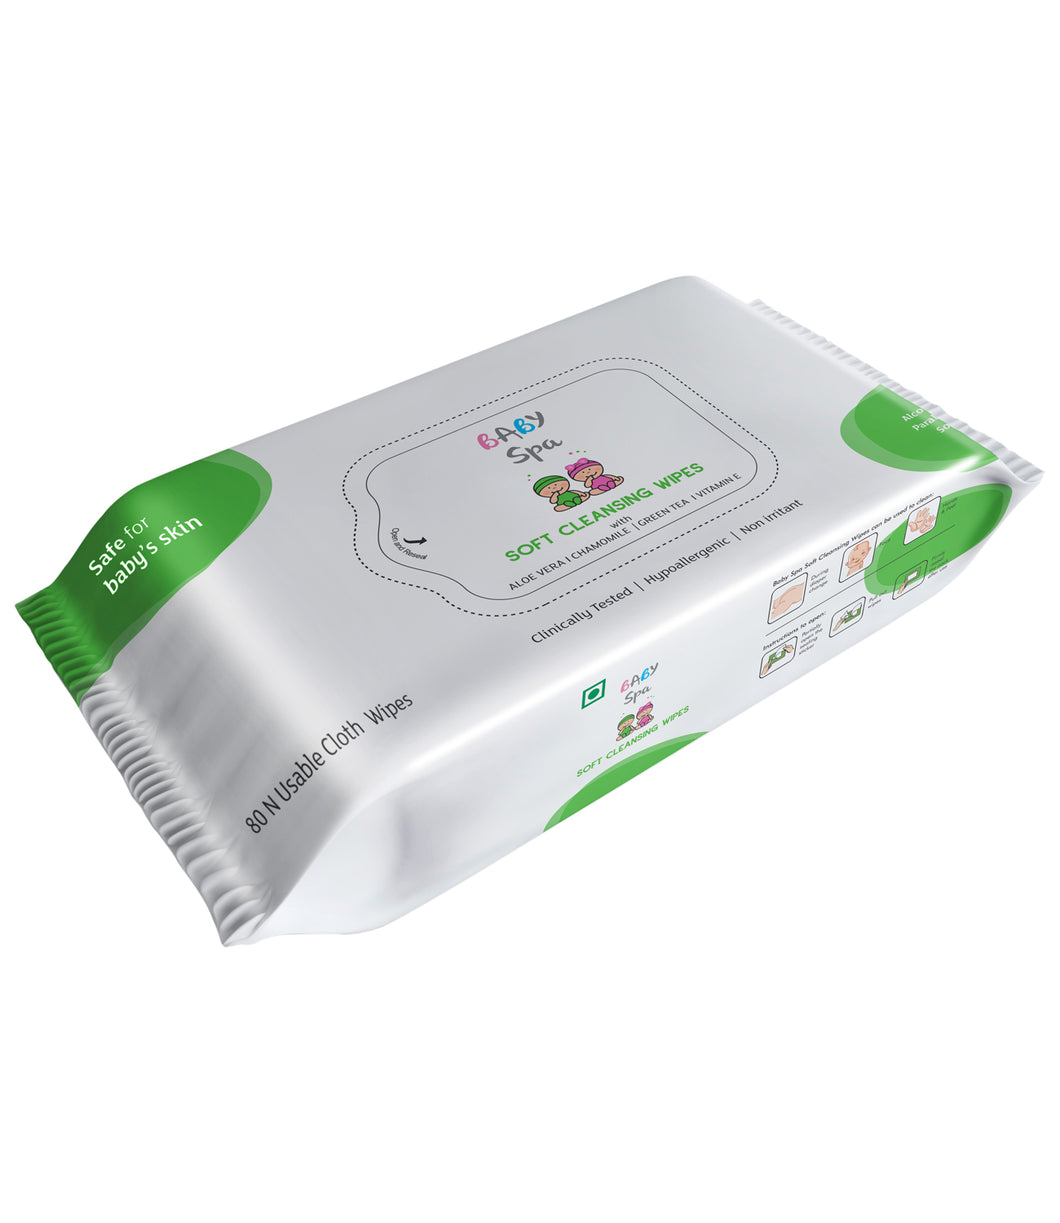 BABY SPA SOFT CLEANSING WIPES (80 PCS) - Pack of 2